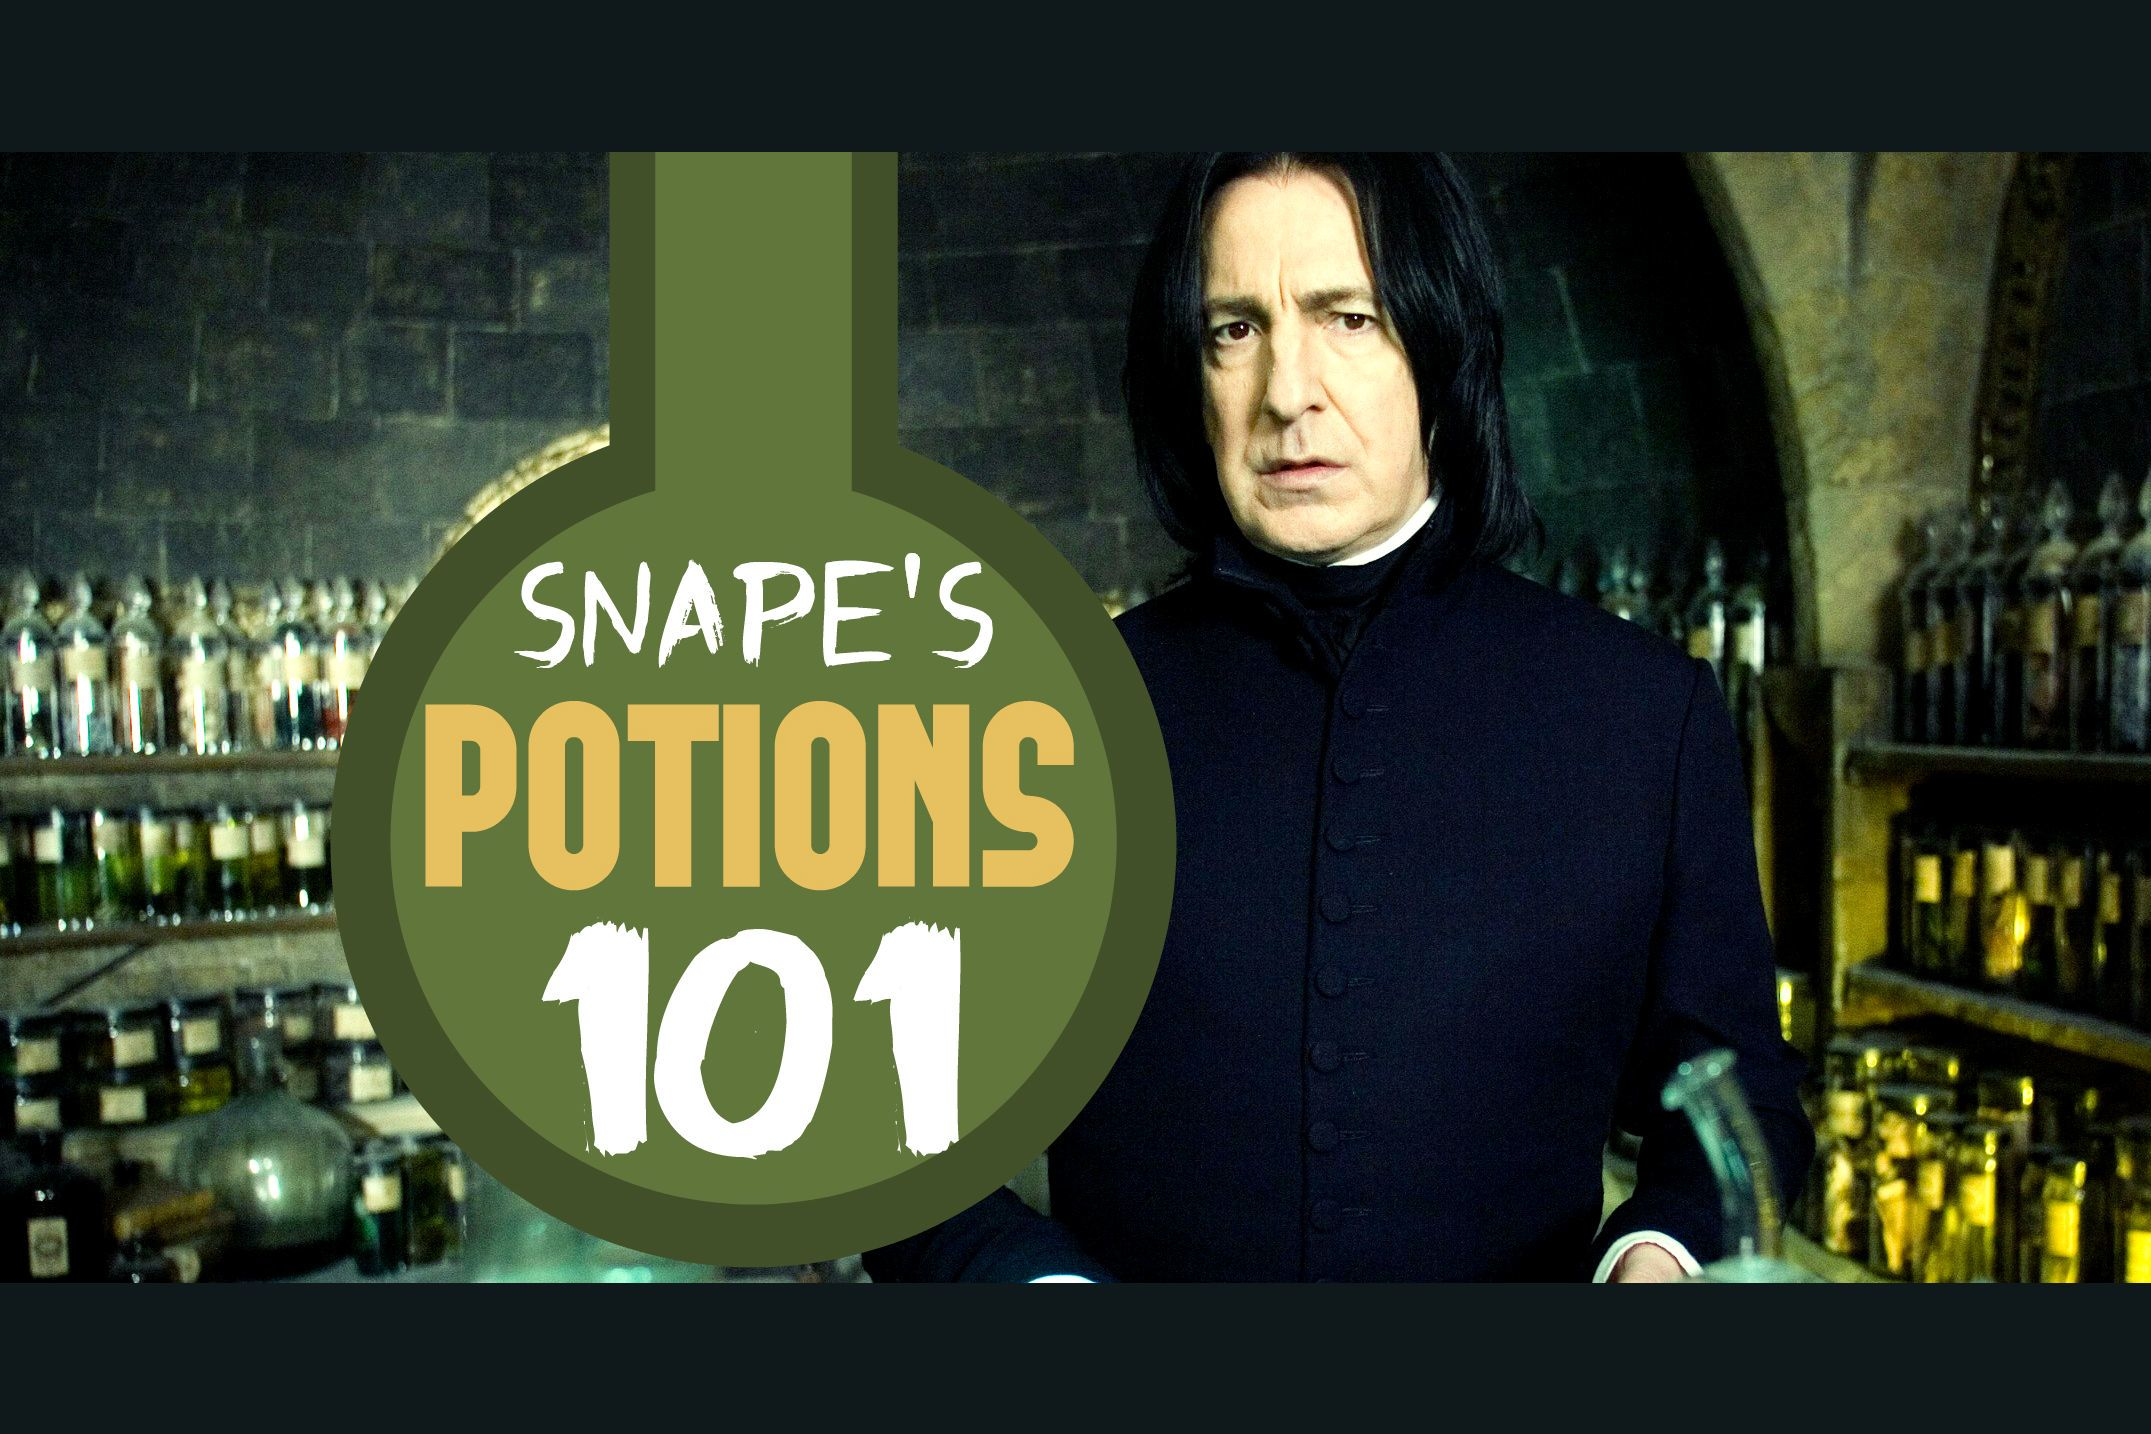 K And J Auto >> Can You Pass Professor Snape's Potions 101?